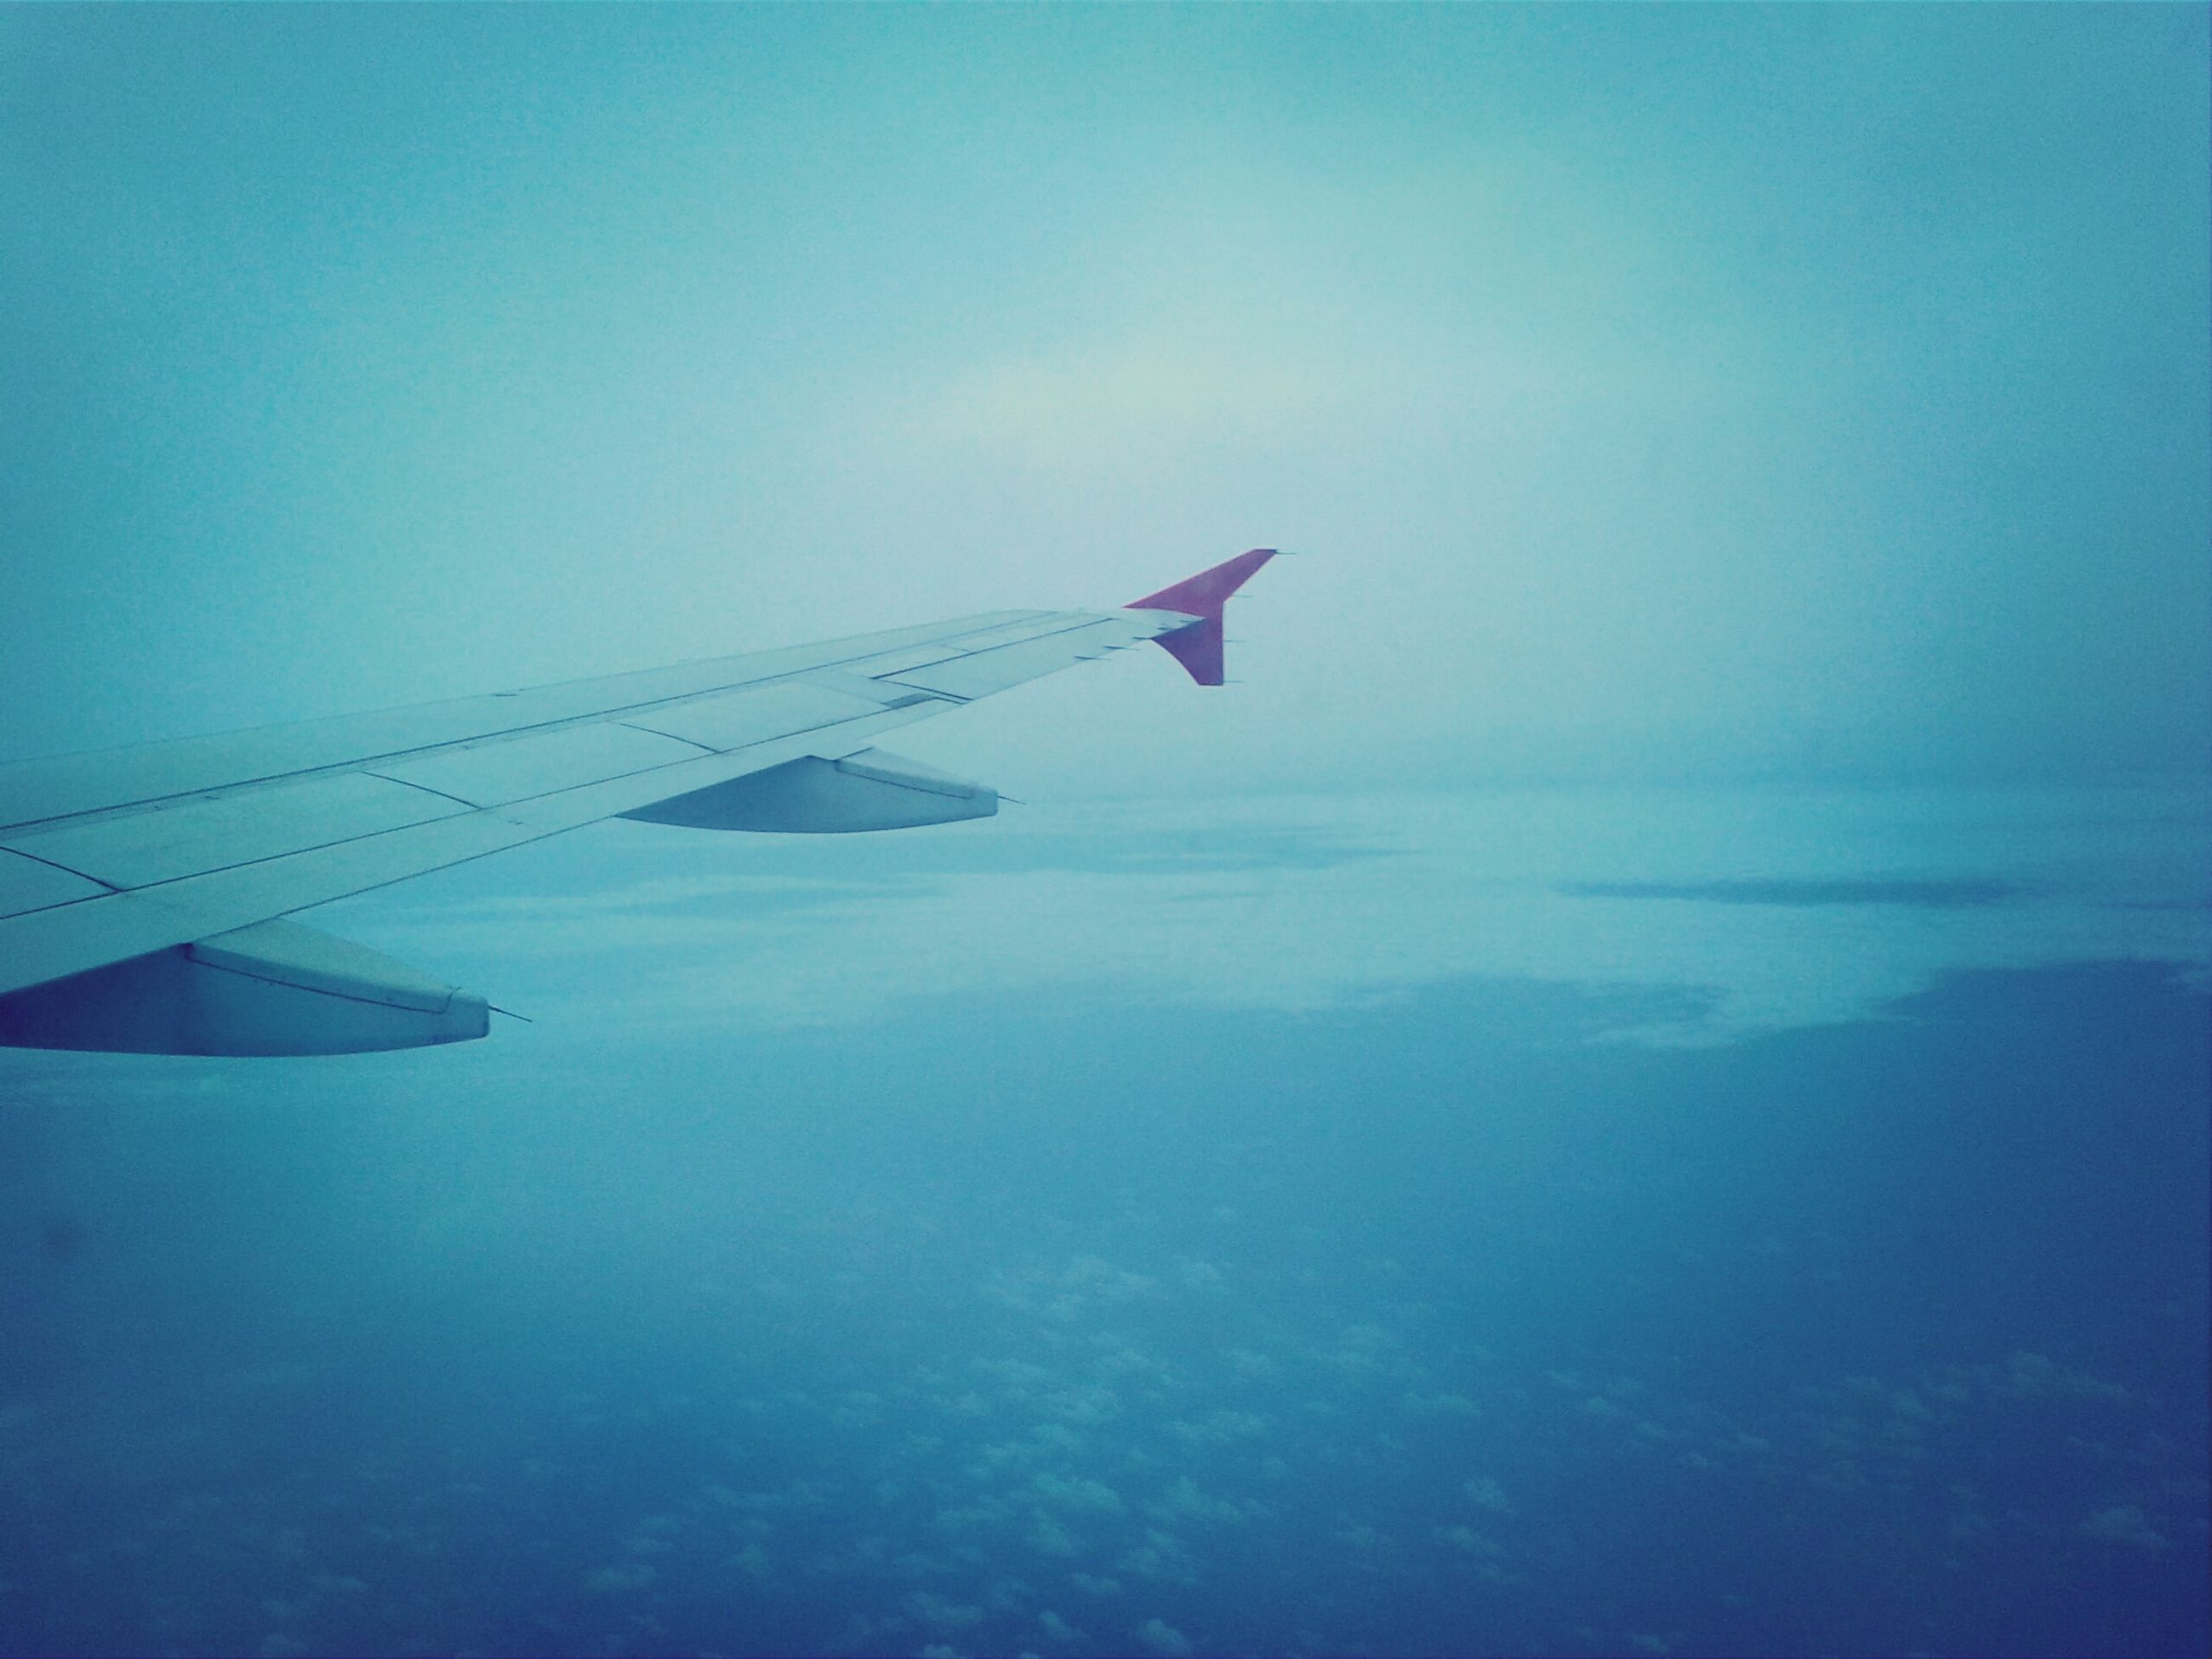 transportation, airplane, air vehicle, aircraft wing, mode of transport, flying, aerial view, part of, blue, travel, cropped, mid-air, journey, scenics, beauty in nature, on the move, nature, landscape, sky, airplane wing